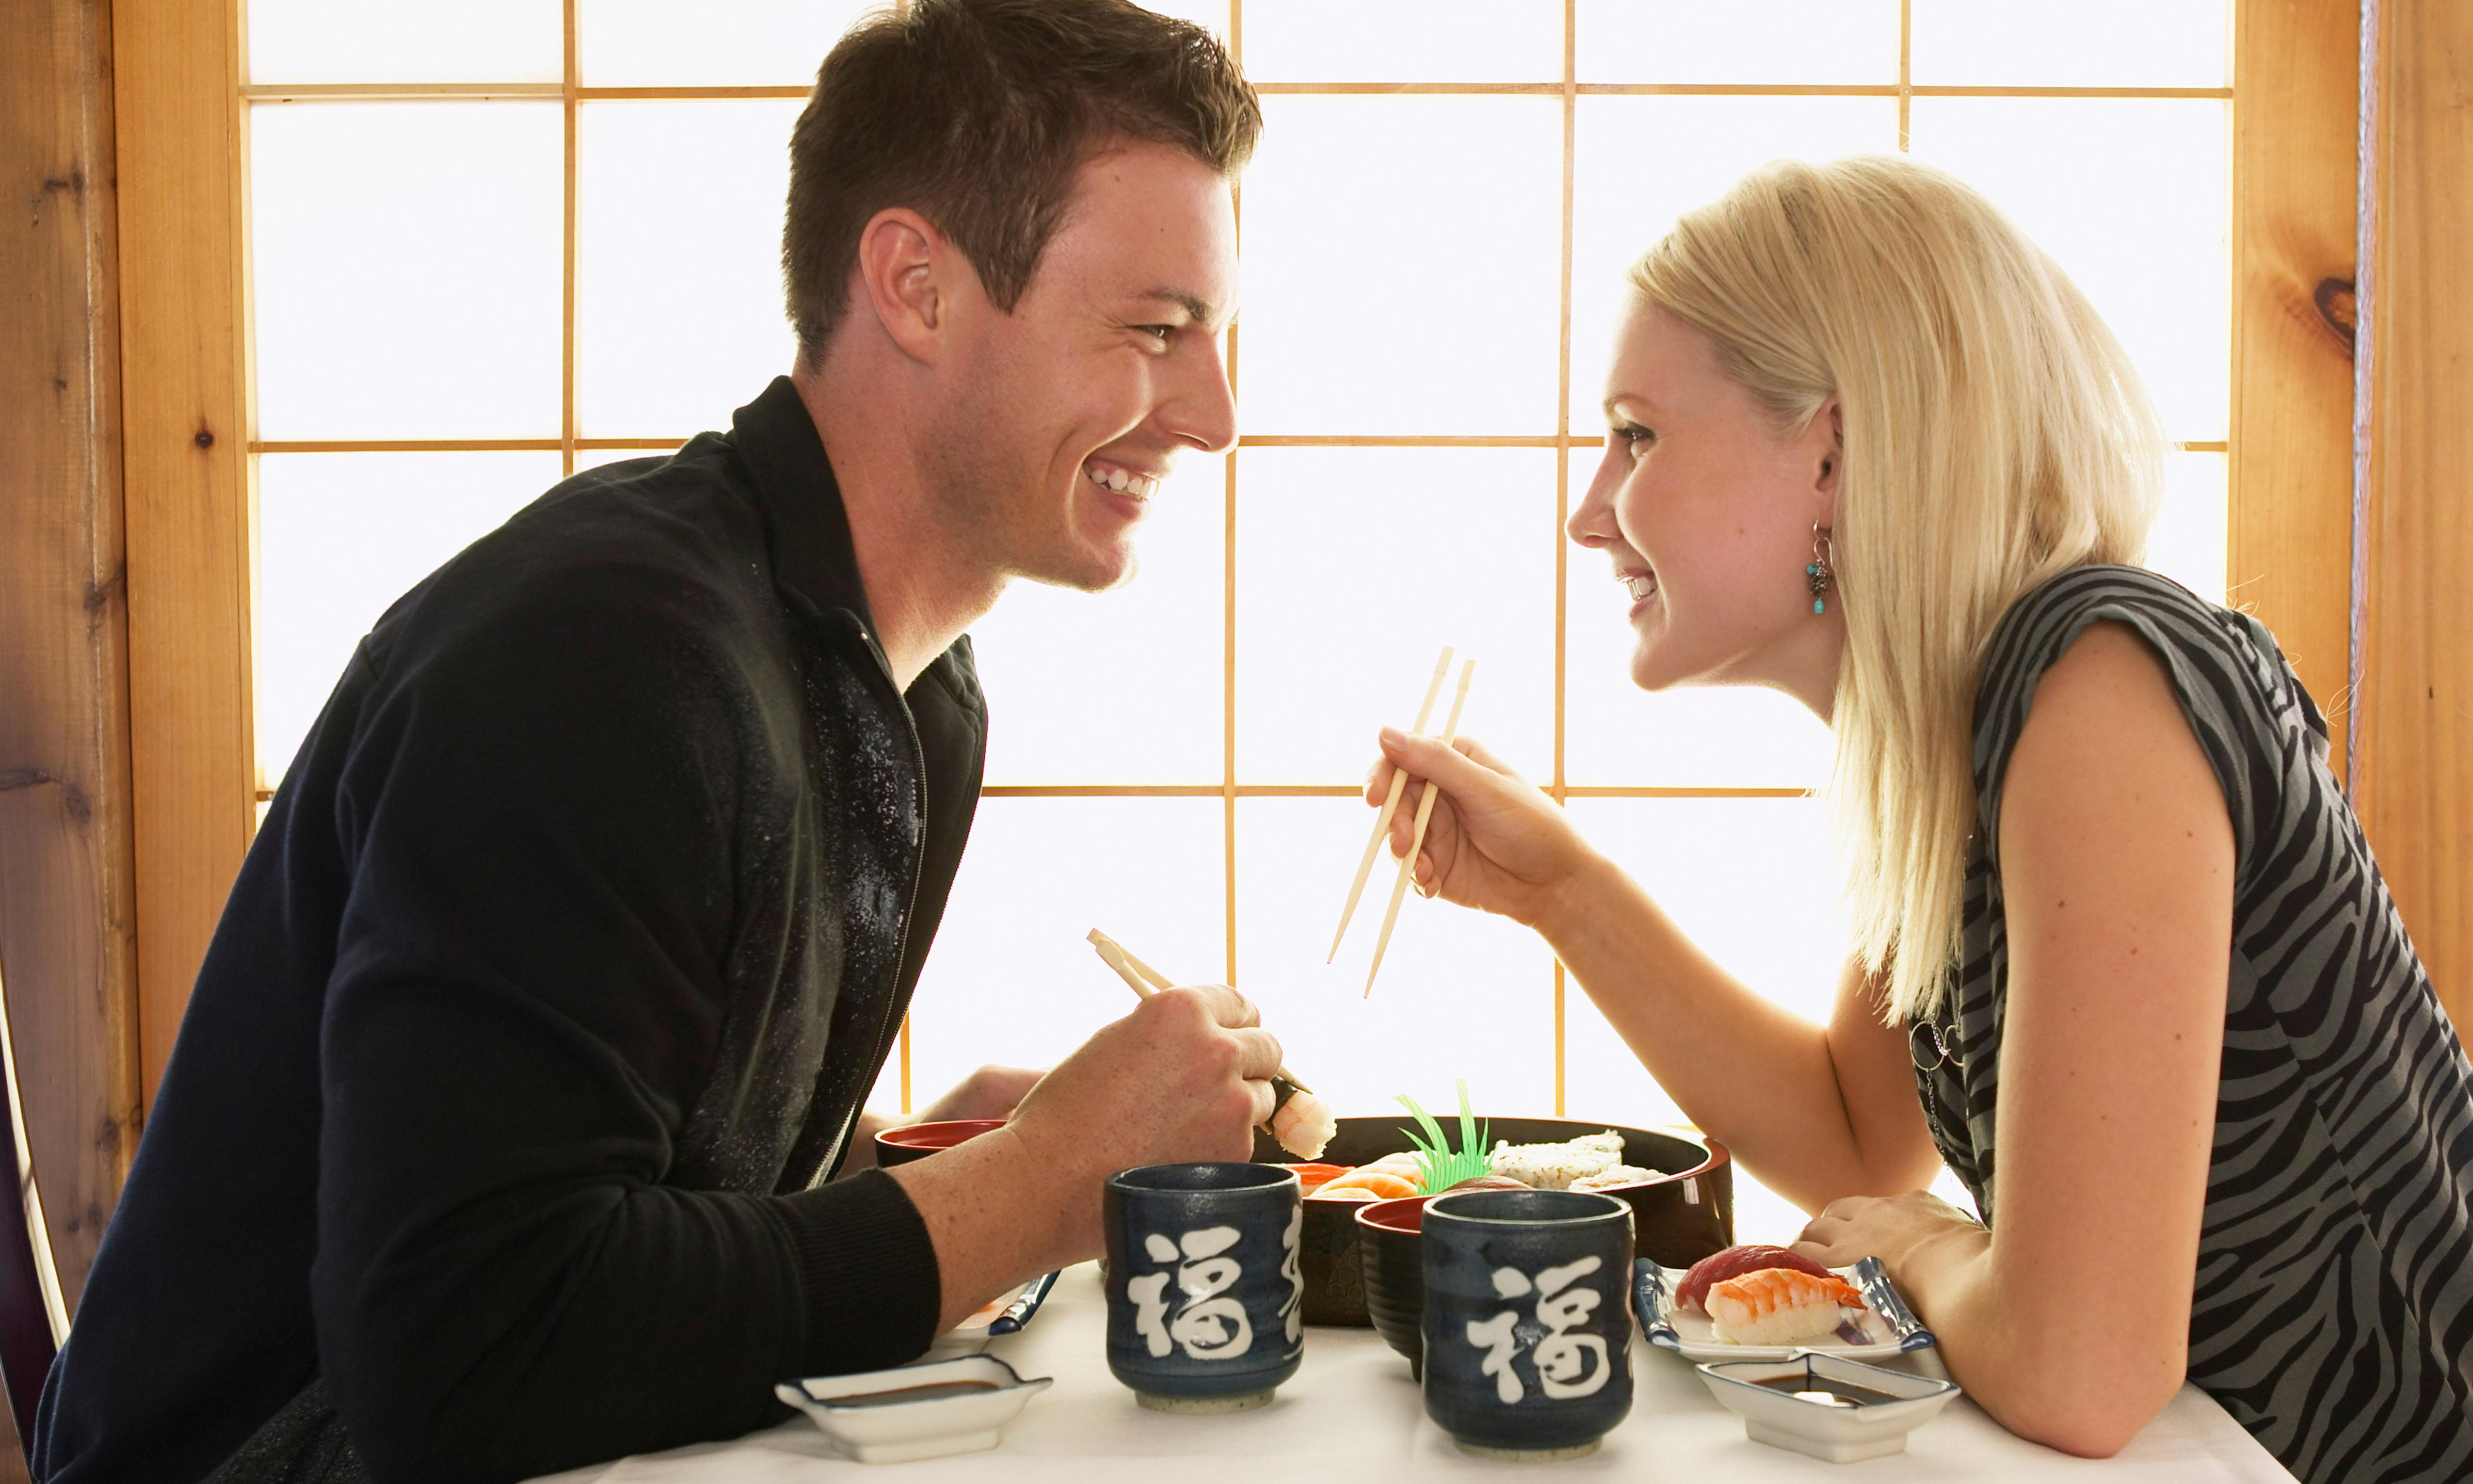 How to eat on a first date to make sure you get a second one